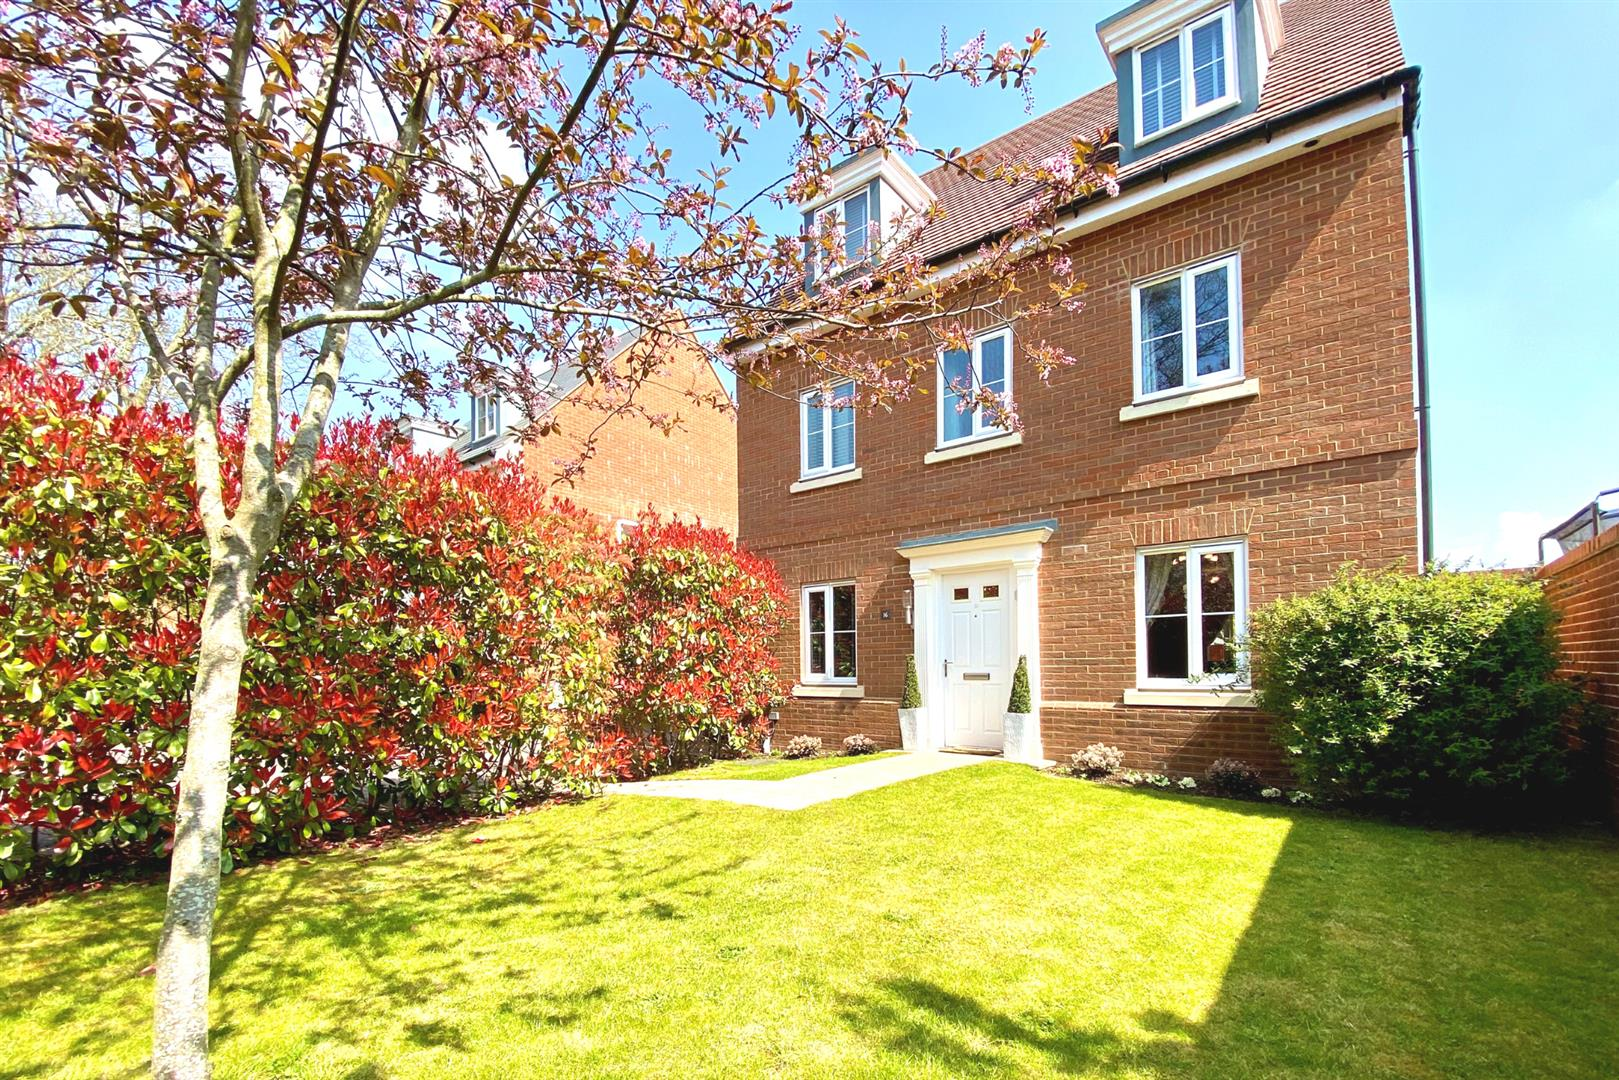 5 bed detached for sale in Three Mile Cross - Property Image 1